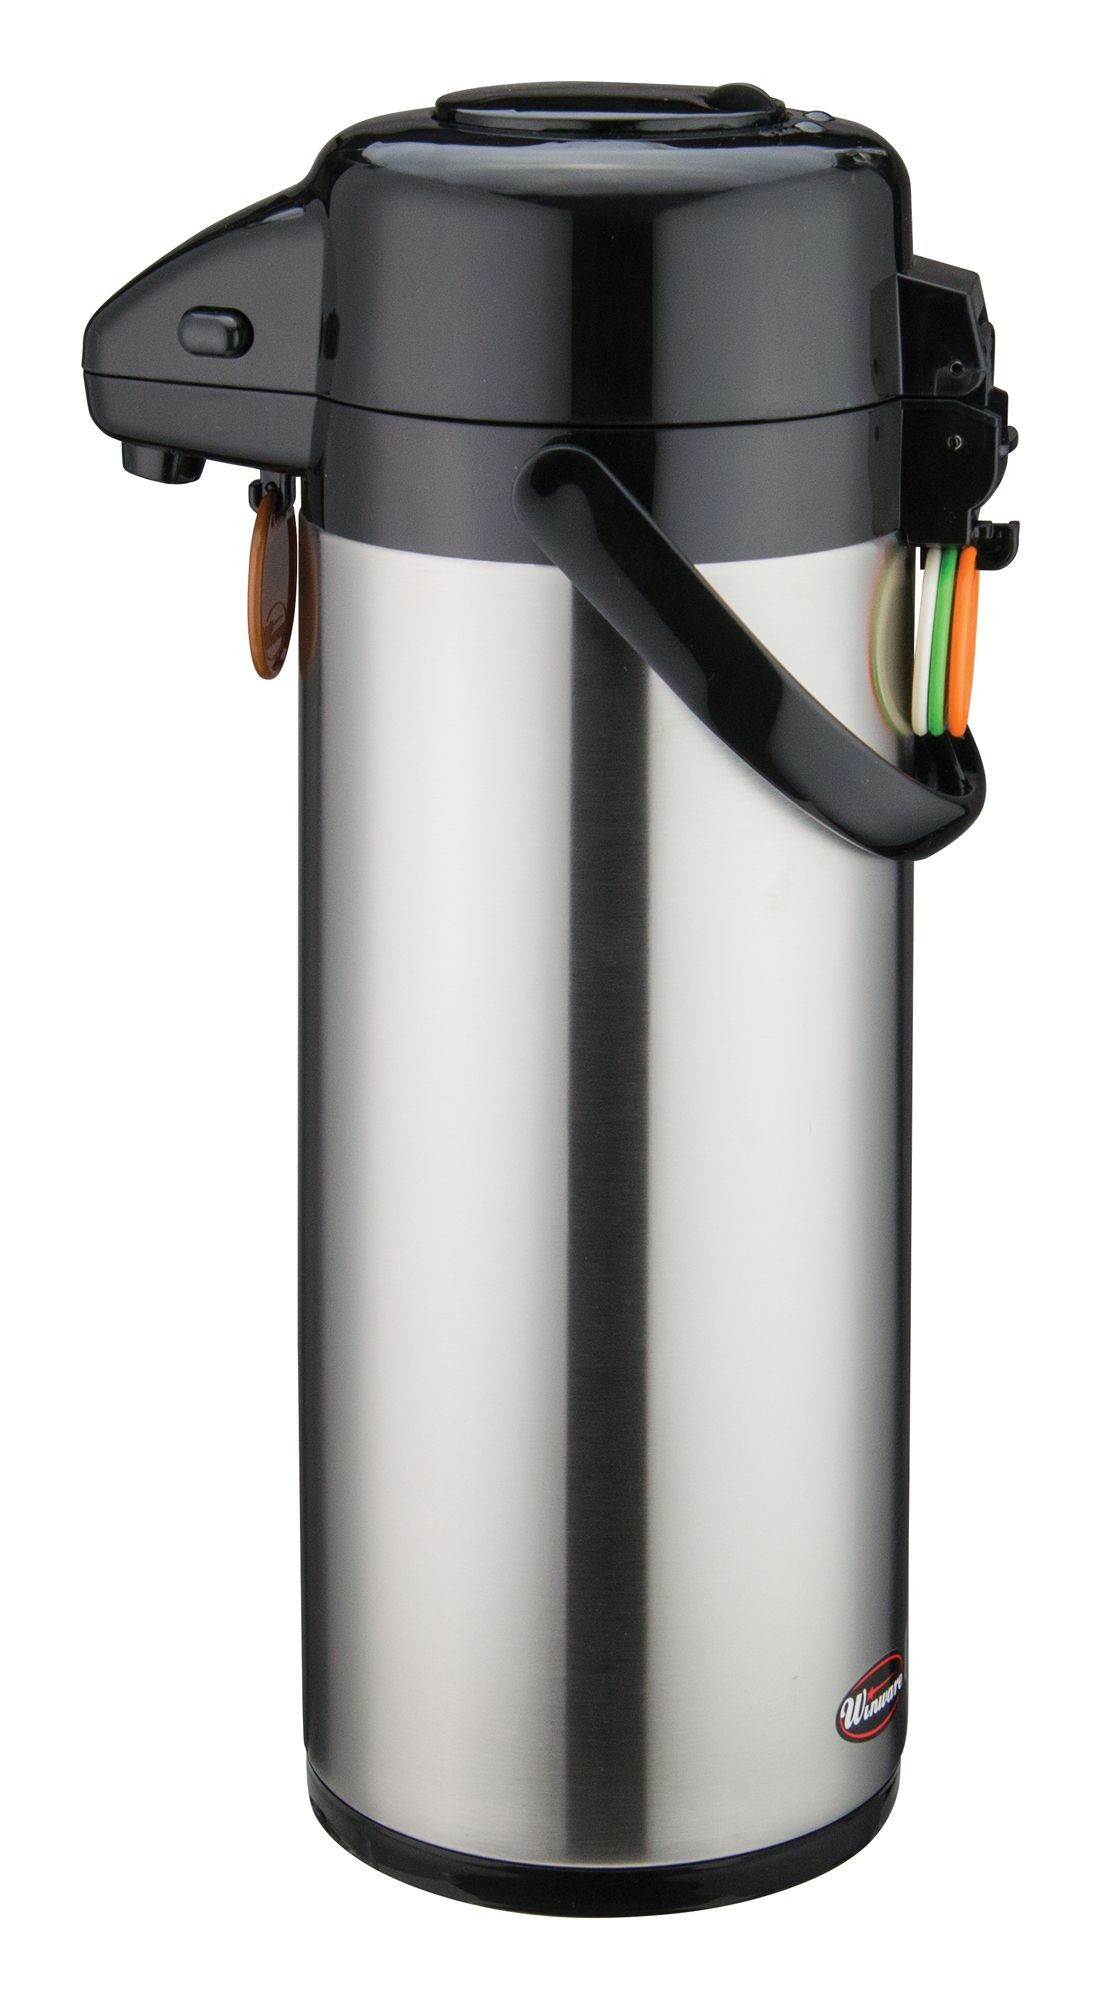 Winco APSP-930 Vacuum Server with Stainless Steel Liner and Push Button Top 3.0 Liter